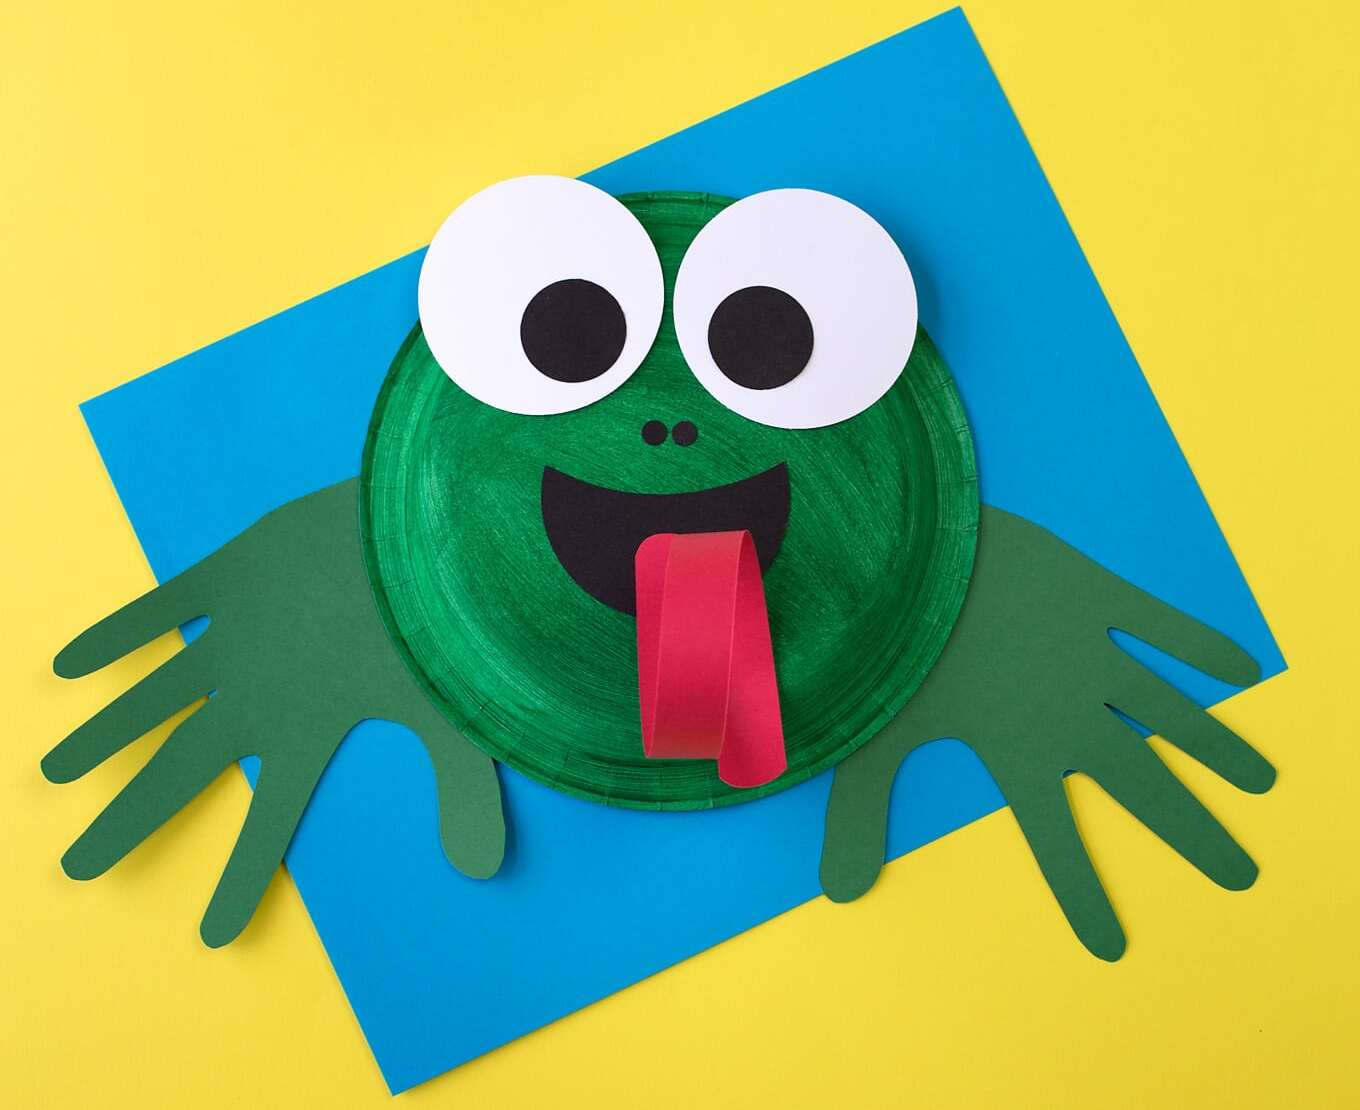 Paper plate frog face with big googly eyes and its tongue sticking out.